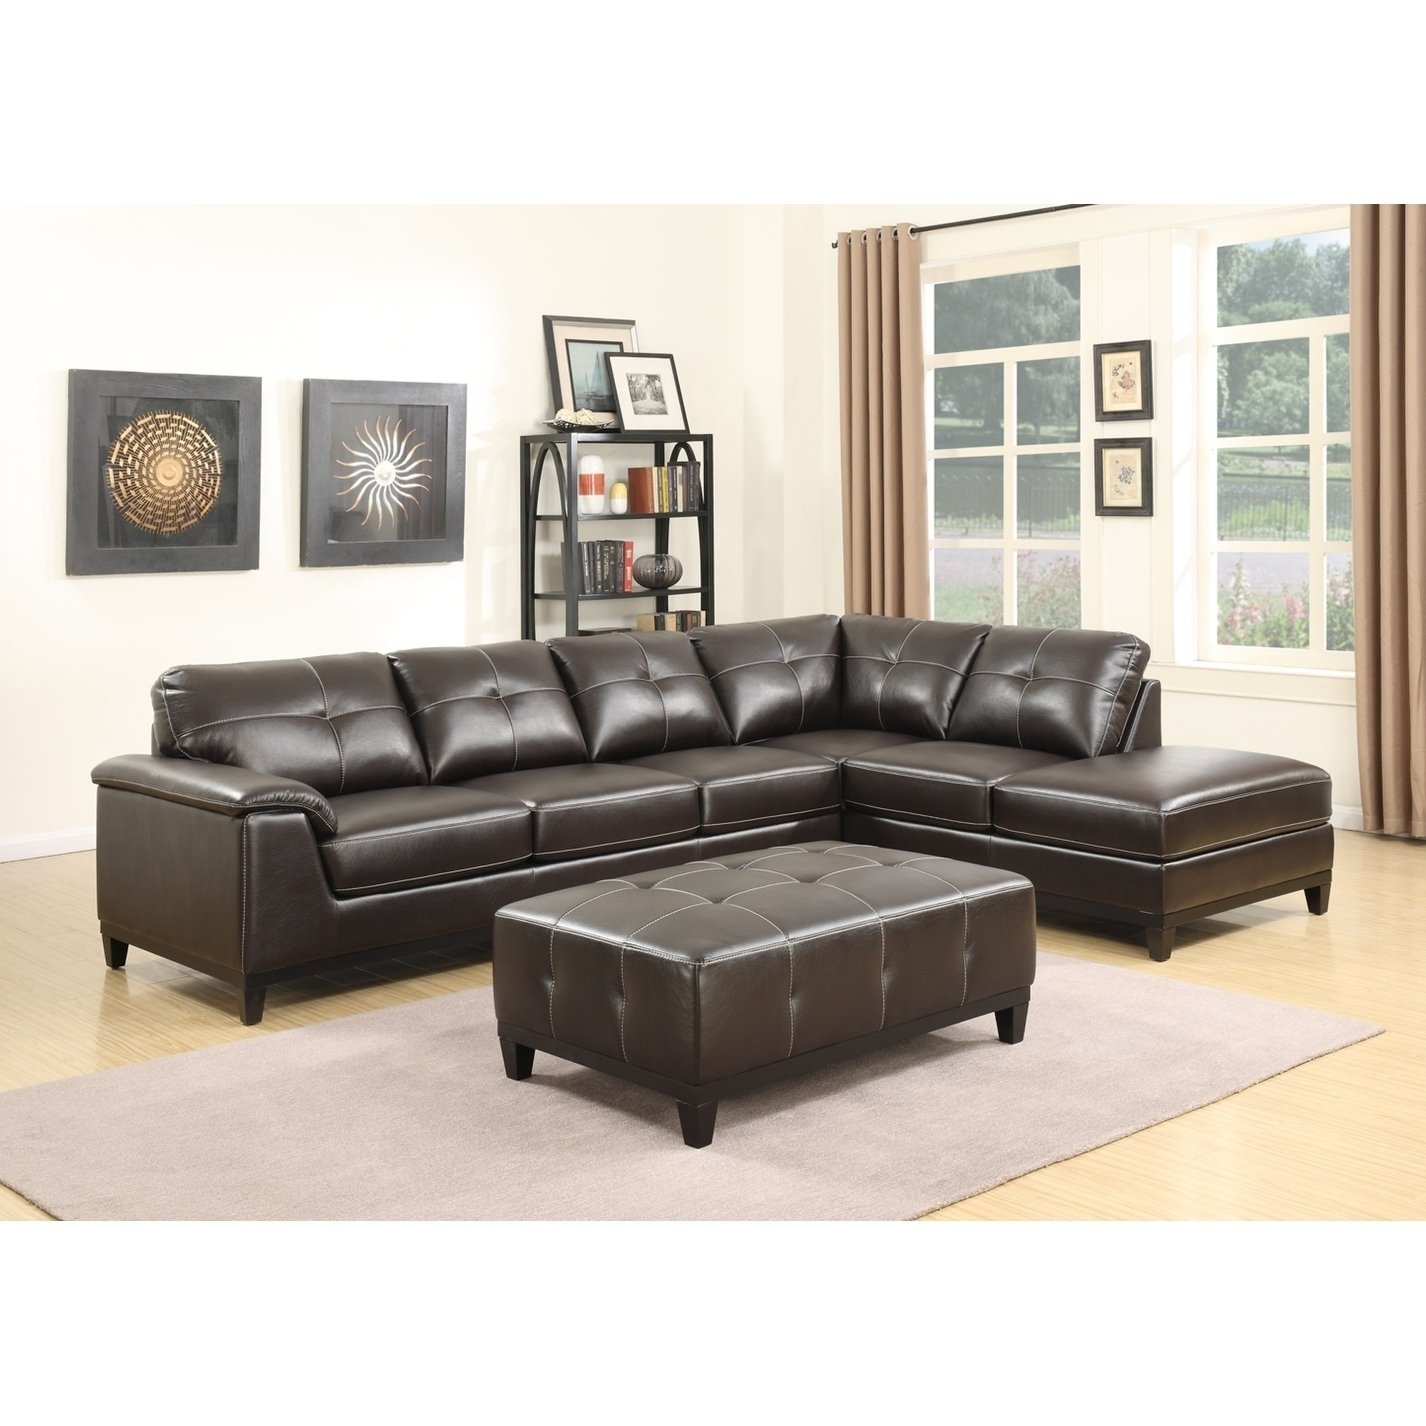 Shop Emerald Home Marquis 3-Piece Sectional With 6 Seats - Free for Haven Blue Steel 3 Piece Sectionals (Image 28 of 30)